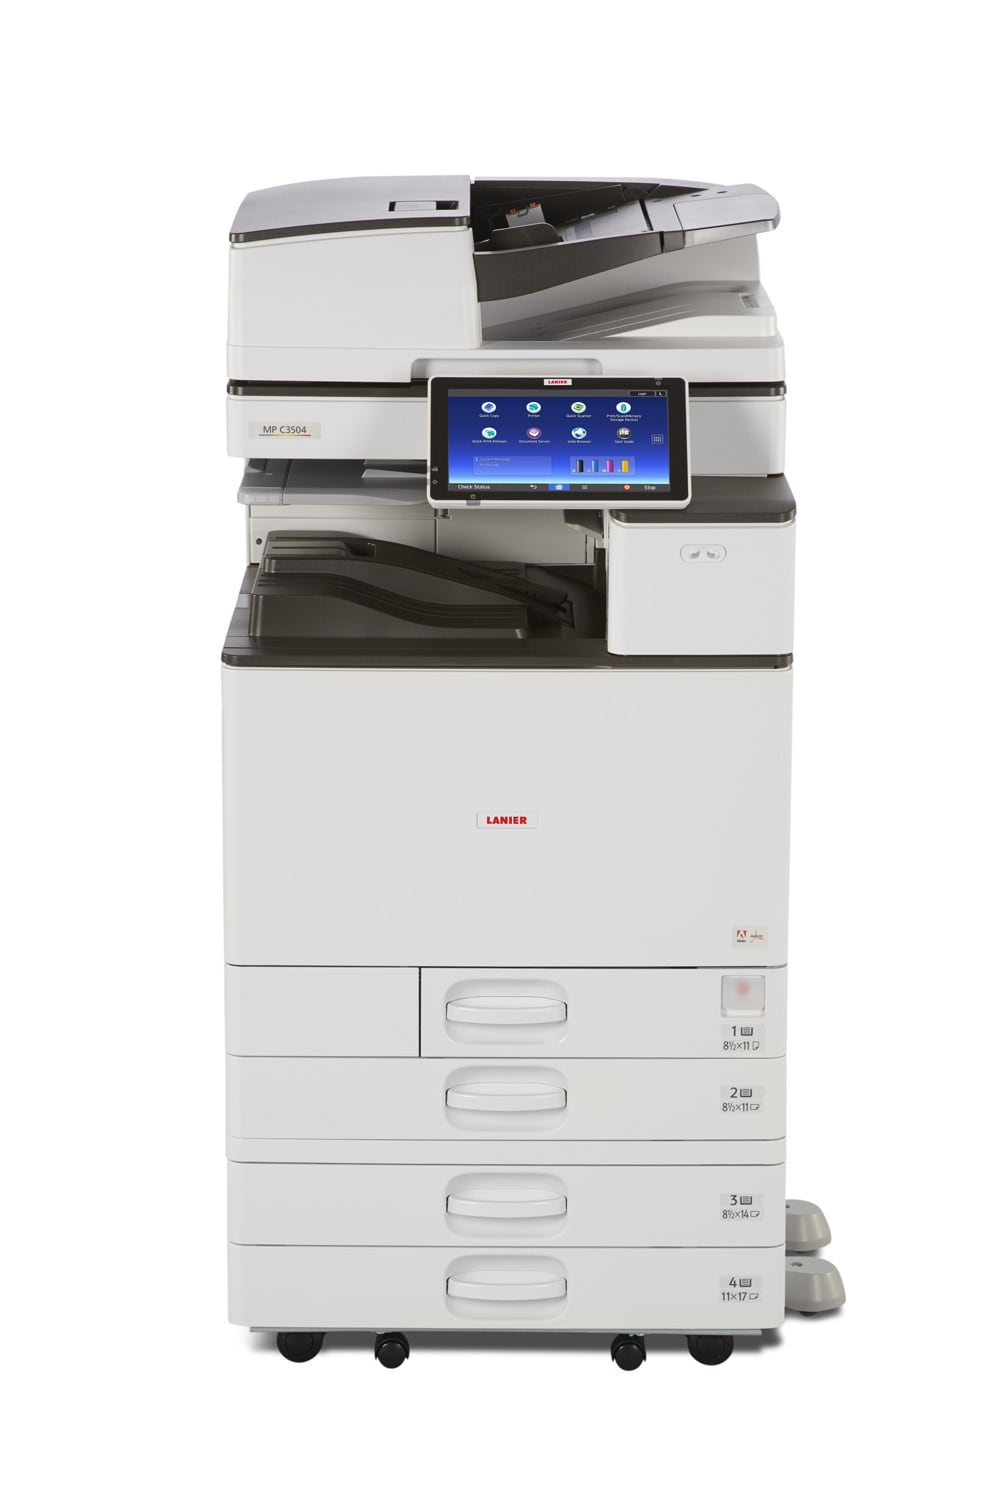 Ricoh MPC2504 colour multifunction office printer